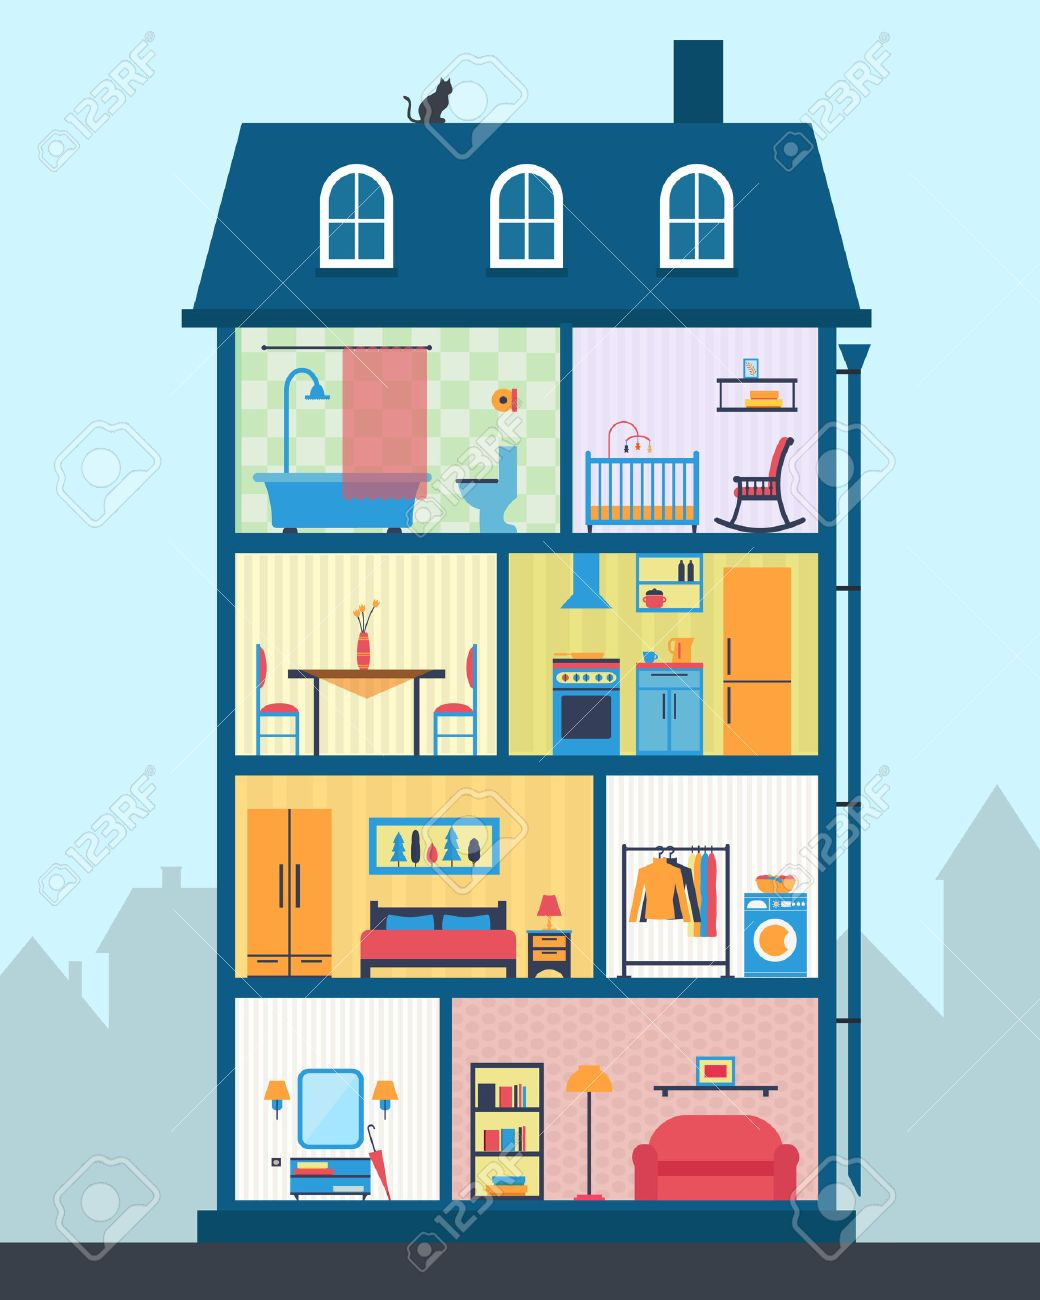 House in cut. Detailed modern house interior. Rooms with furniture. Flat style vector illustration. - 42448563